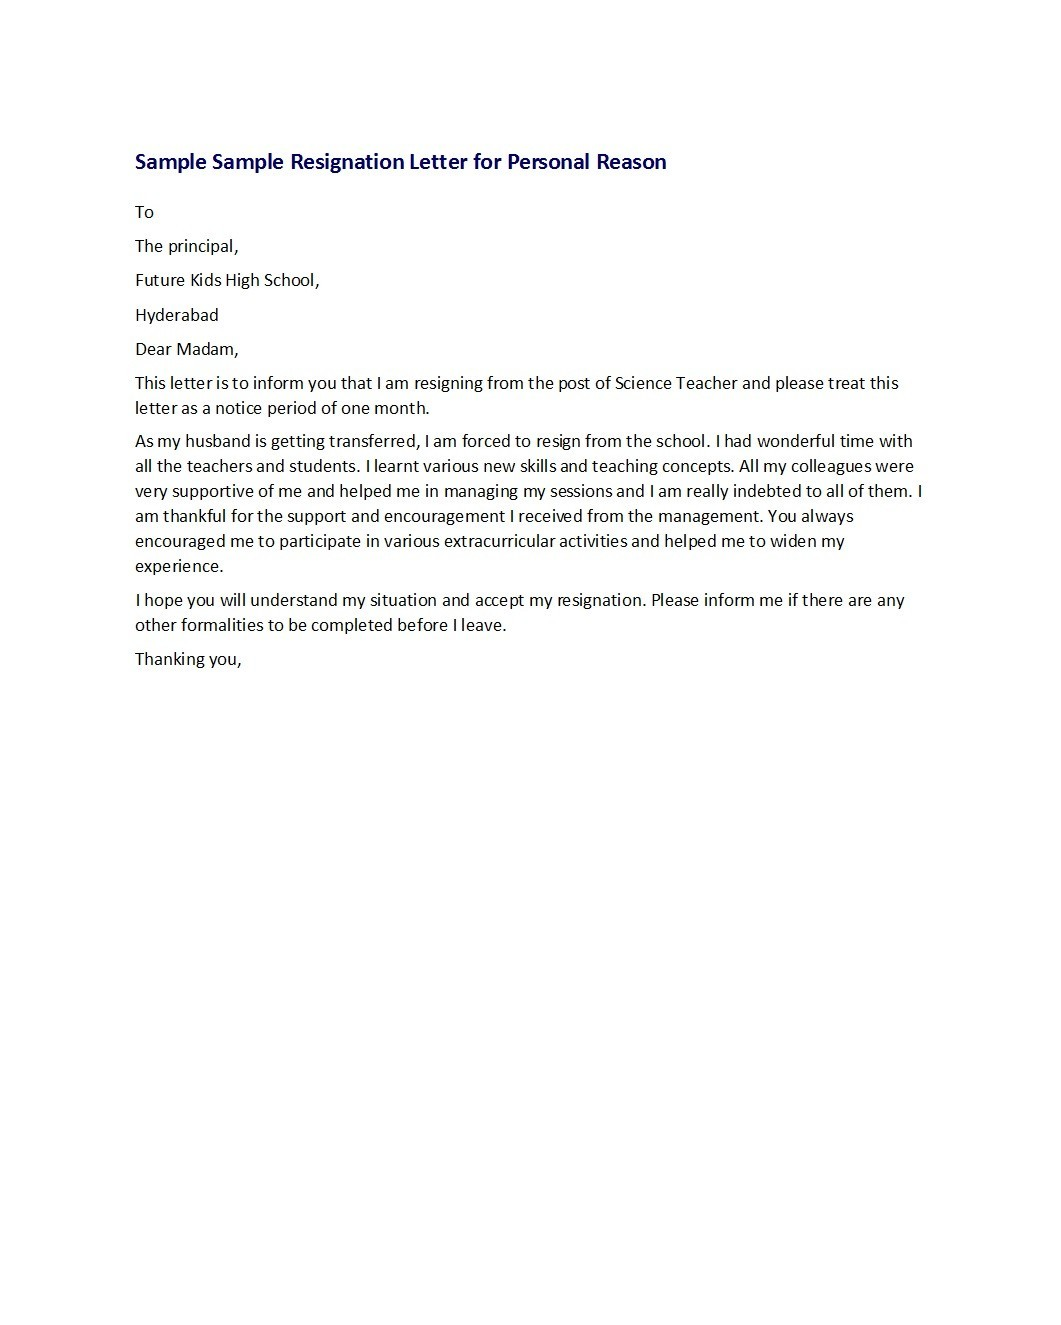 Resign Letter Sample For Personal Reason from templatelab.com